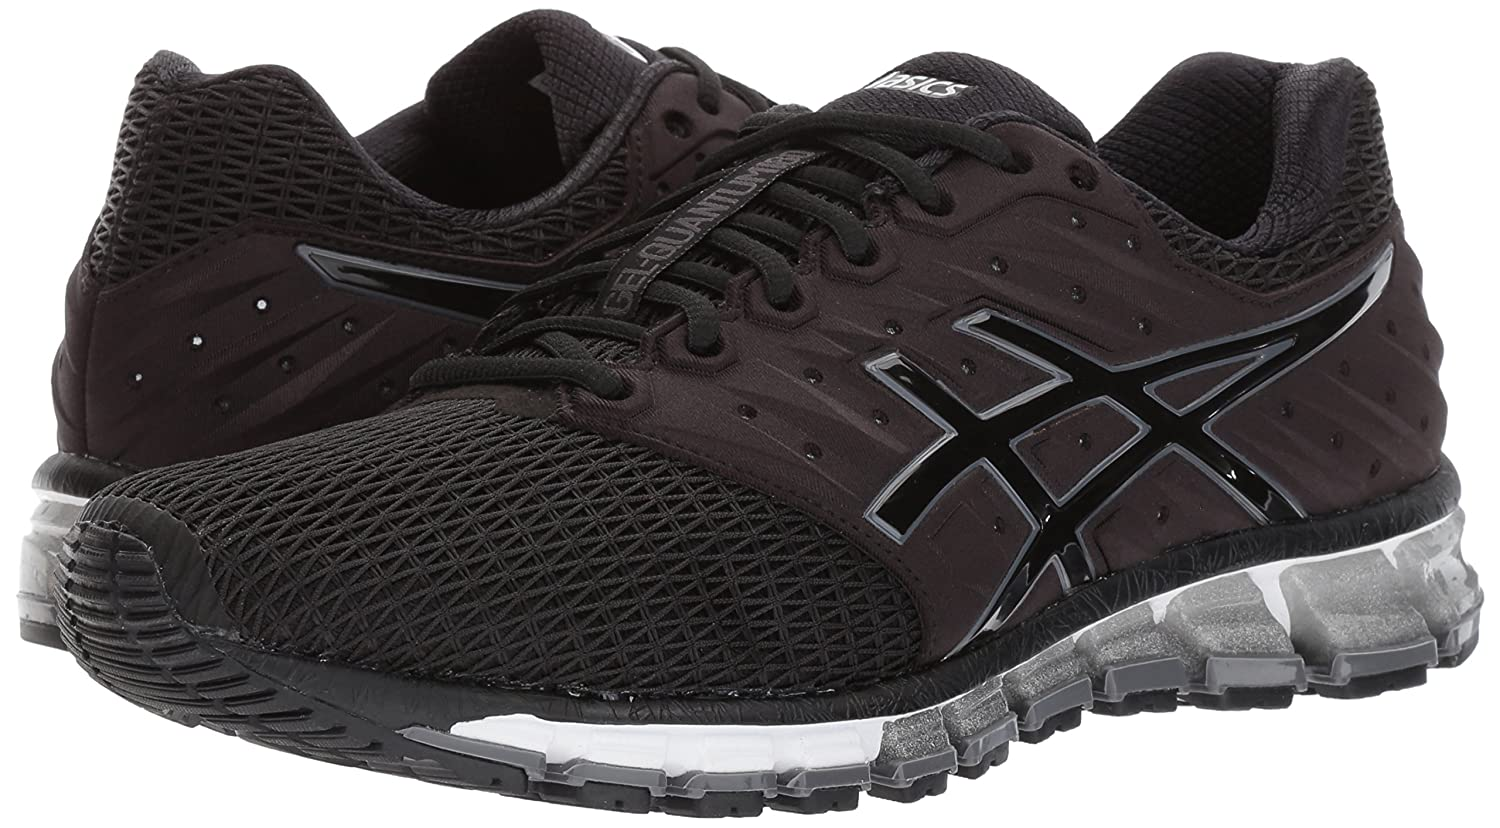 cheaper bde23 dffdf ... australia amazon asics mens gel quantum 180 2 running shoe road running  c5dfe ec9fc